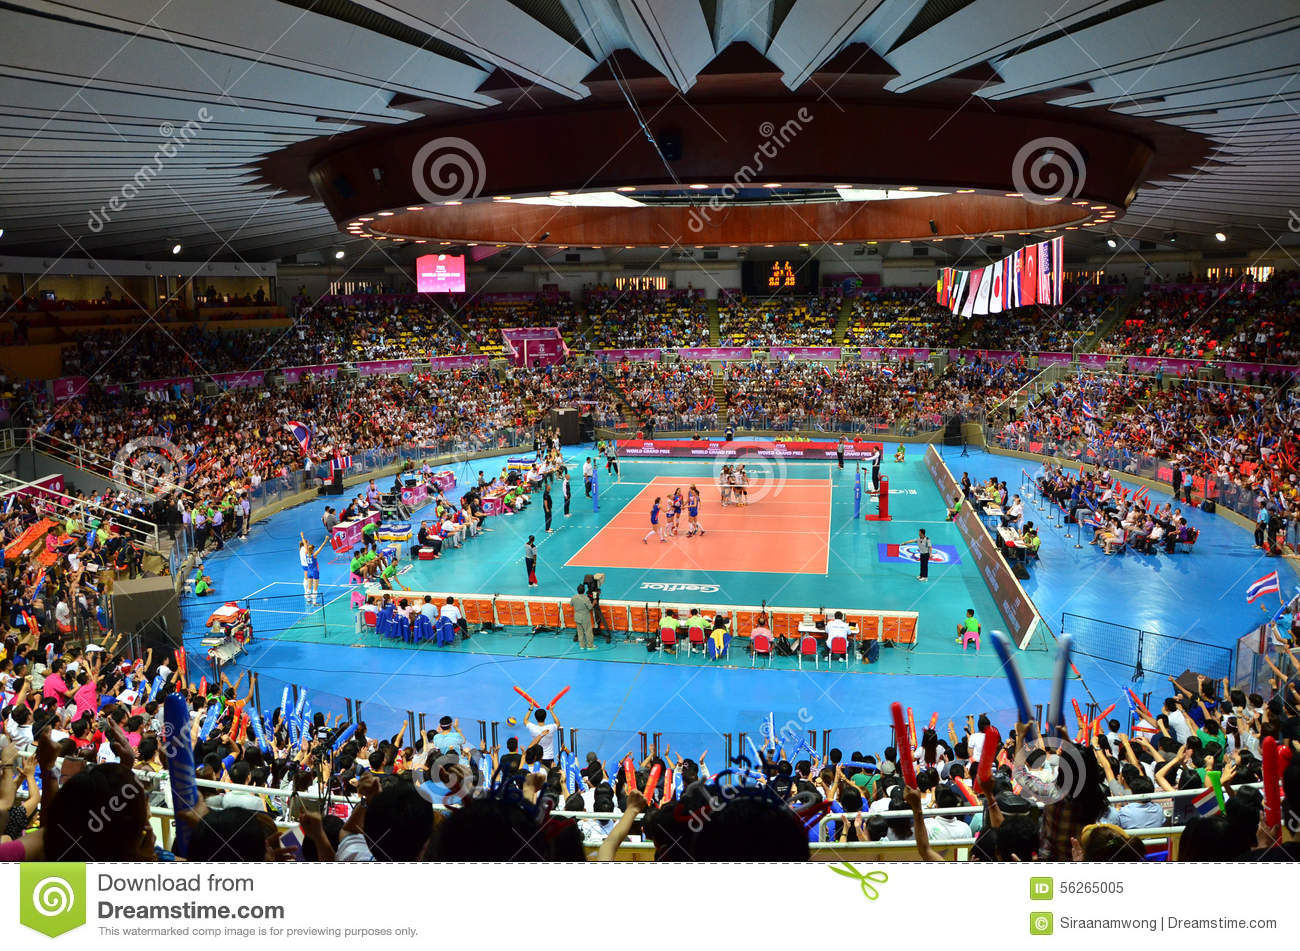 Fivb World Grand Prix Pool H Kicks Off At Hua Mark Indoor Stadium In Bangkok